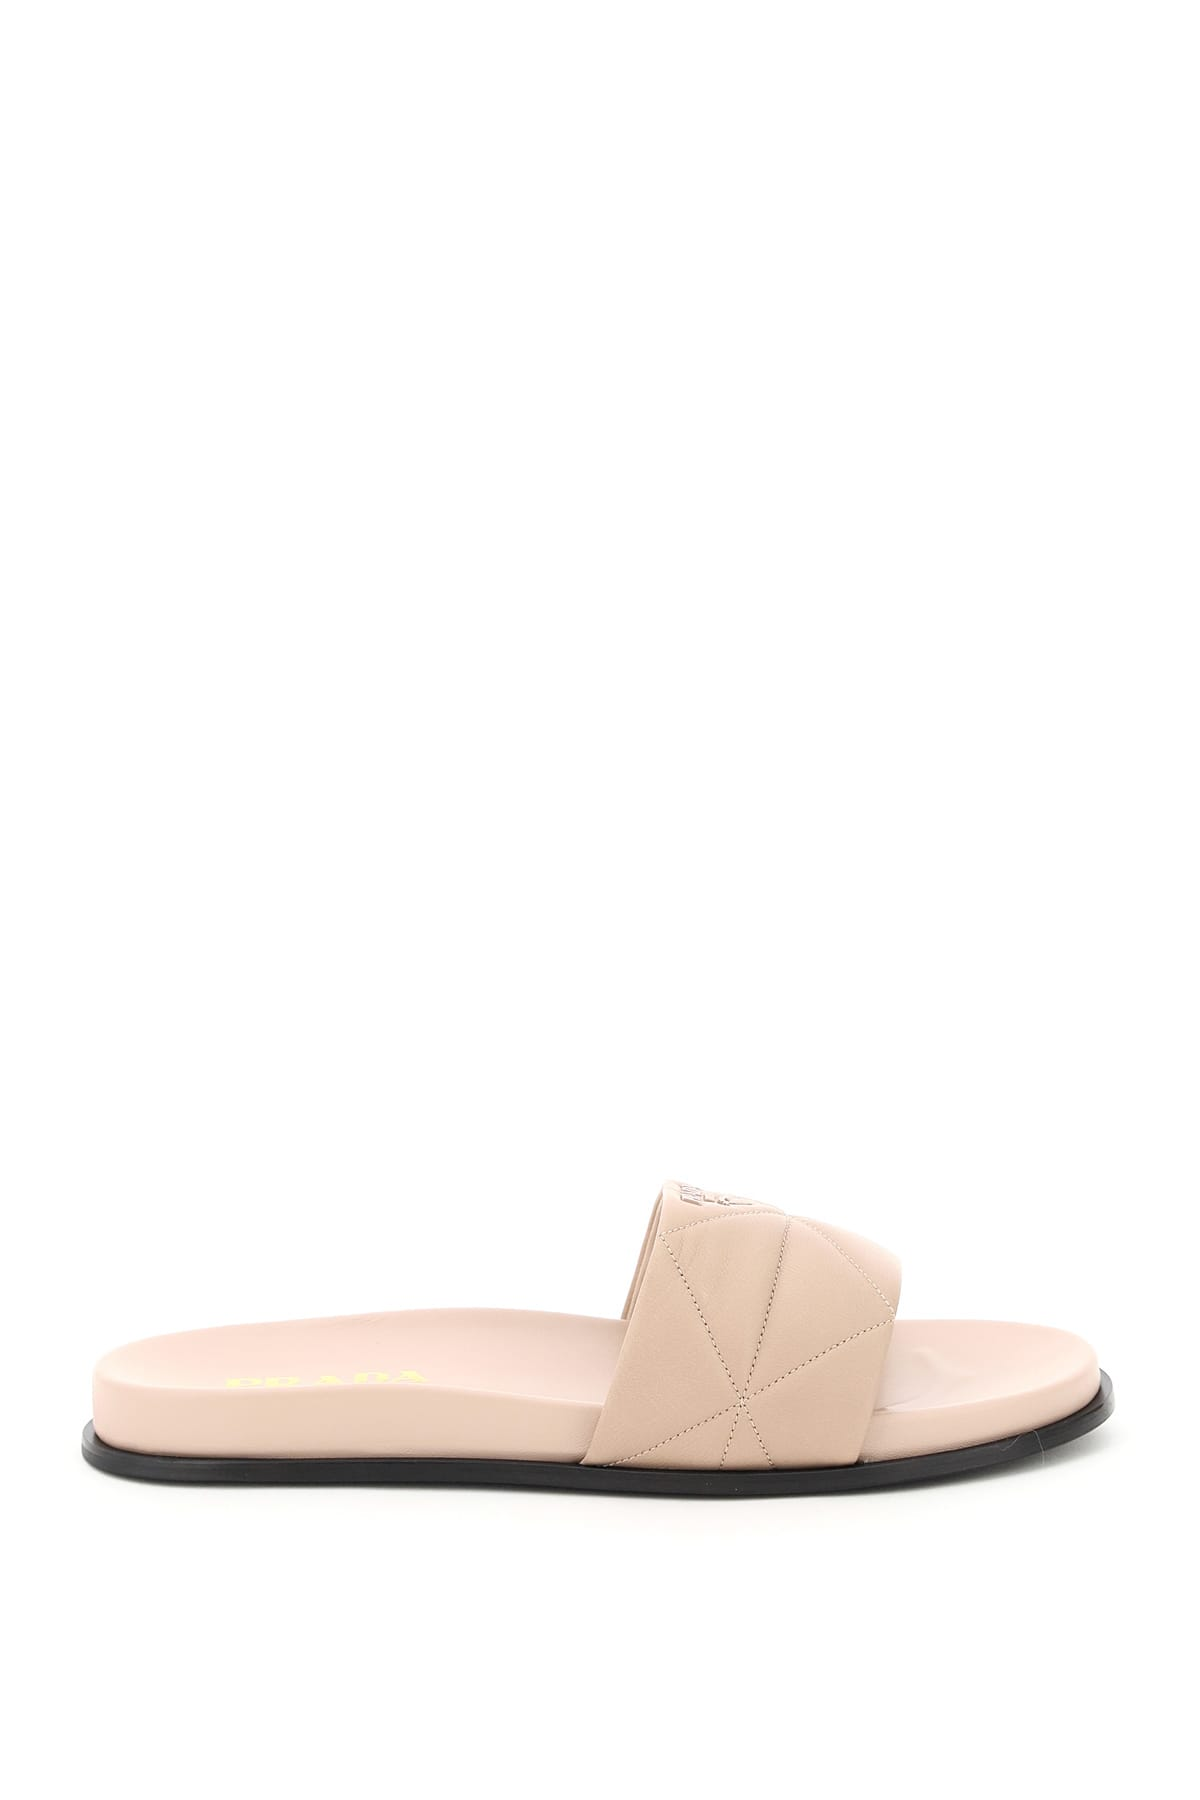 Prada Leathers MULES IN QUILTED NAPPA